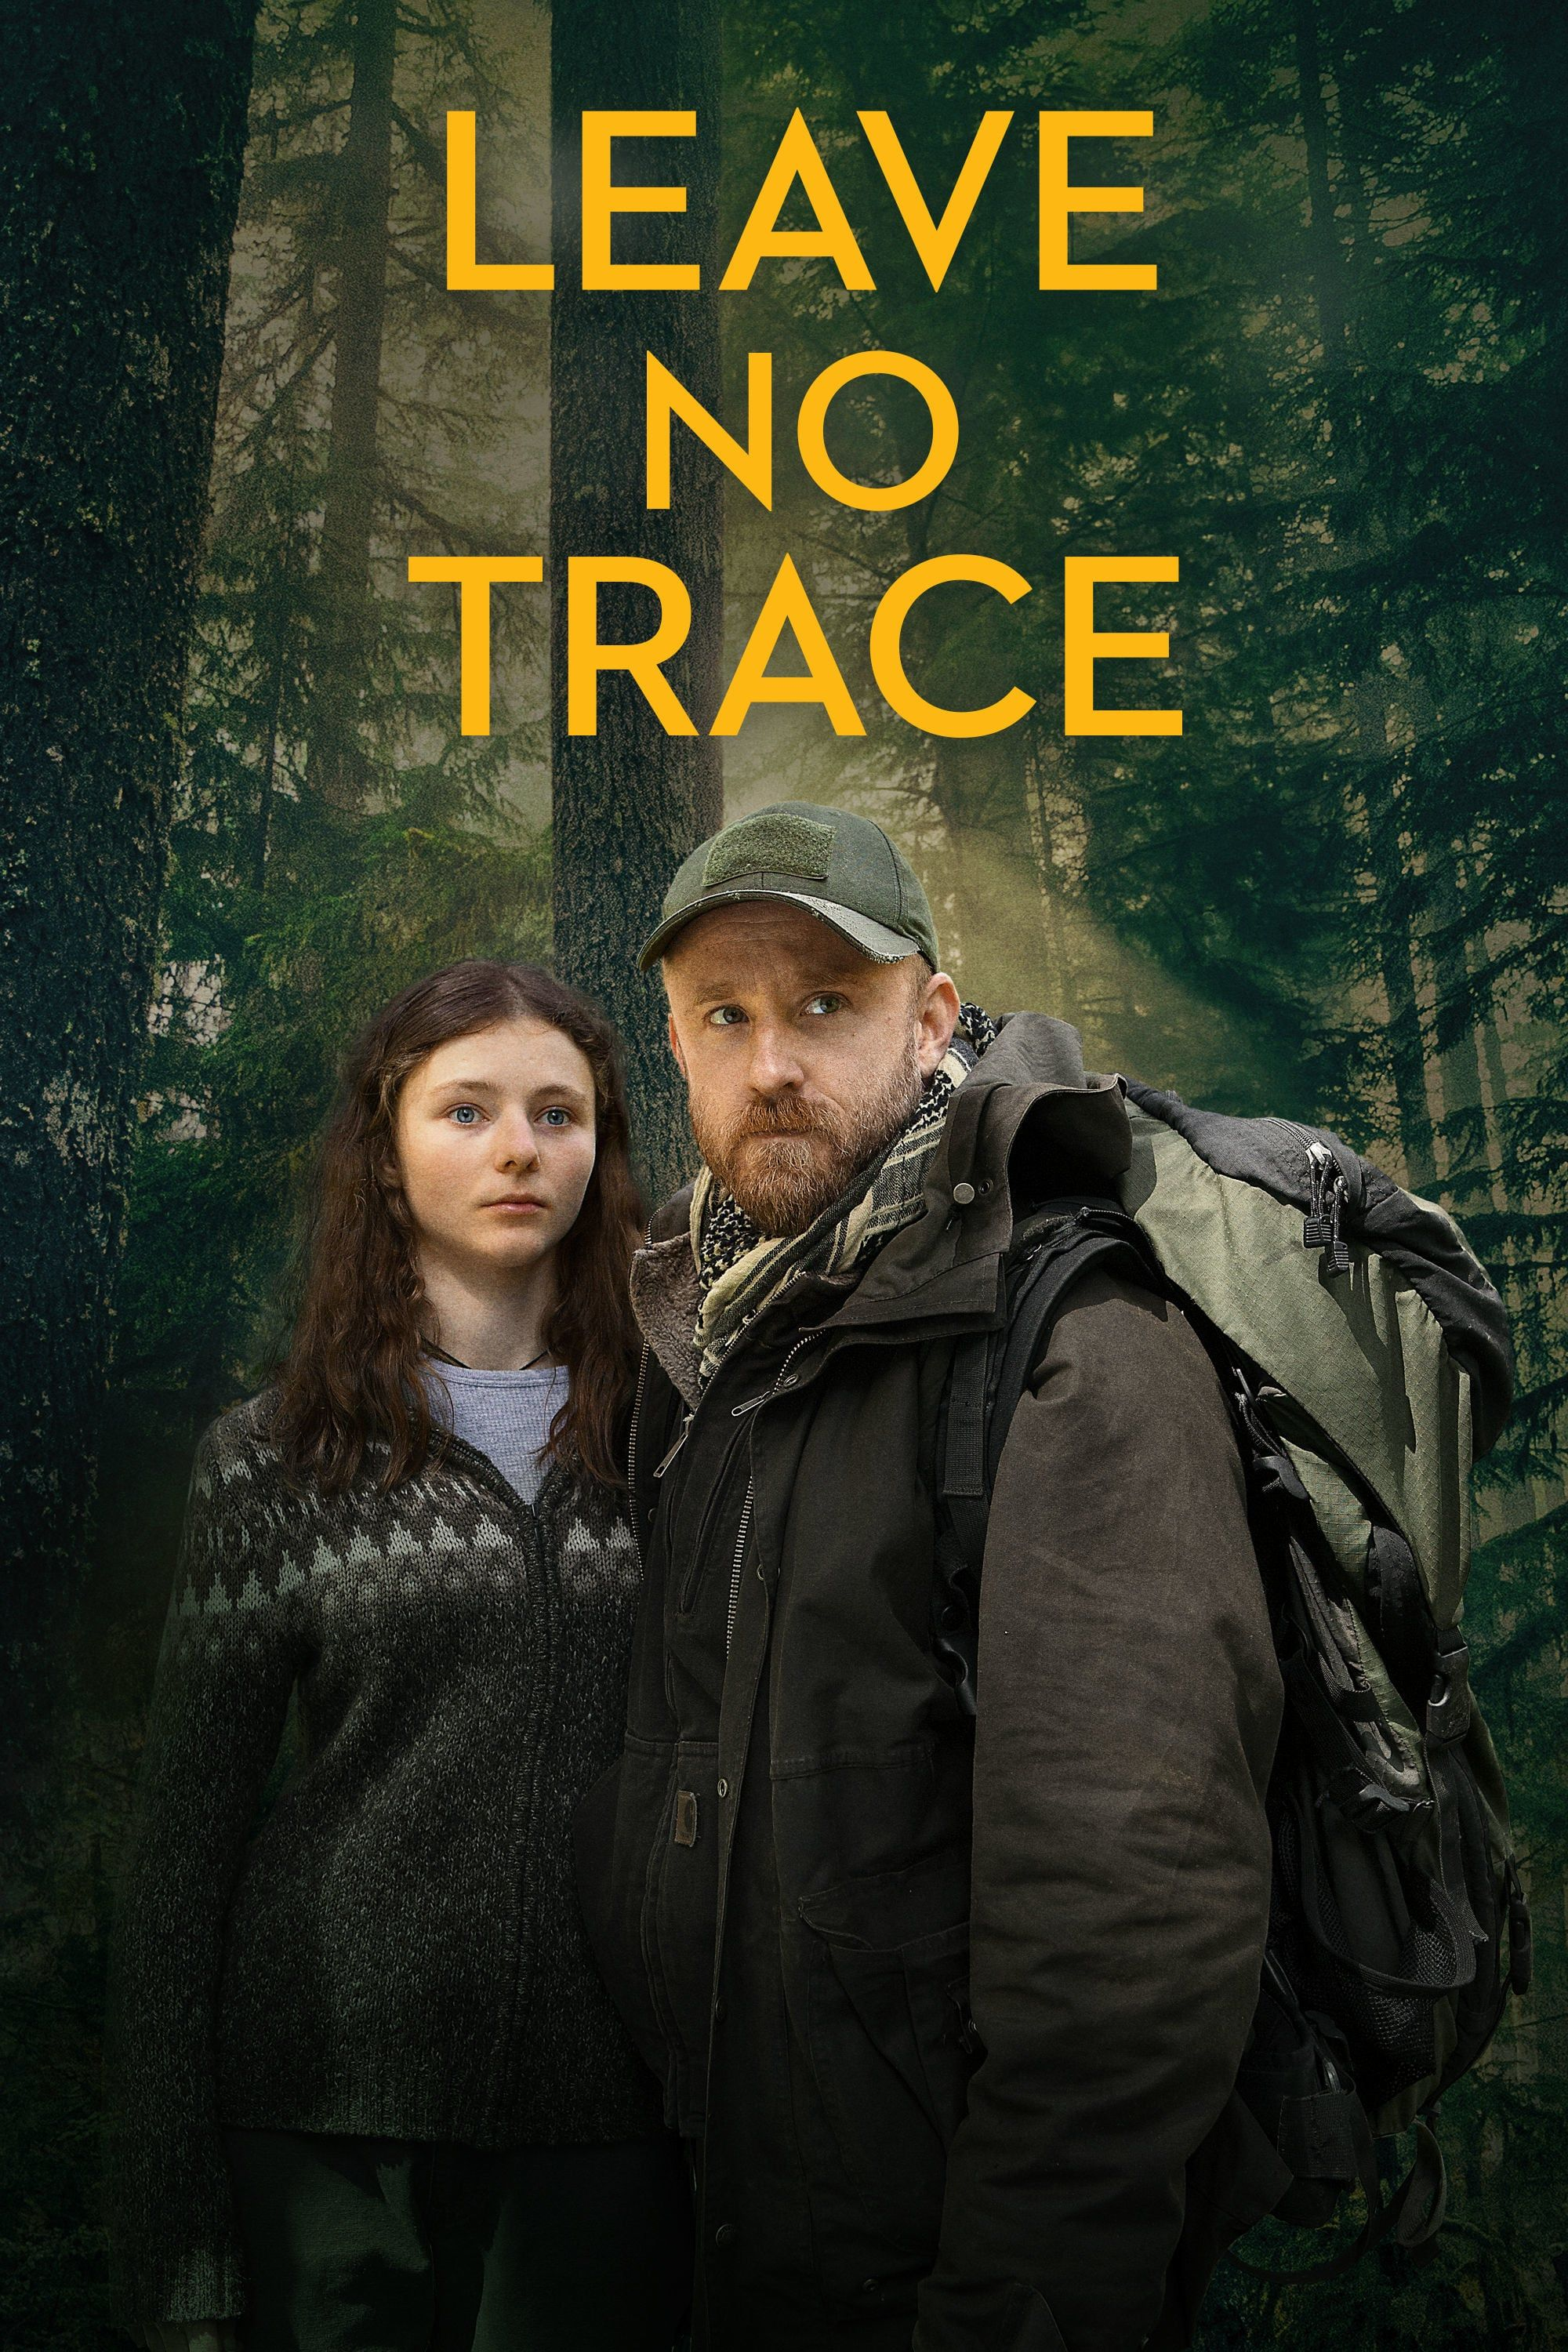 Leave No Trace full movie Streaming Online In Hd 720p Video Quality Film